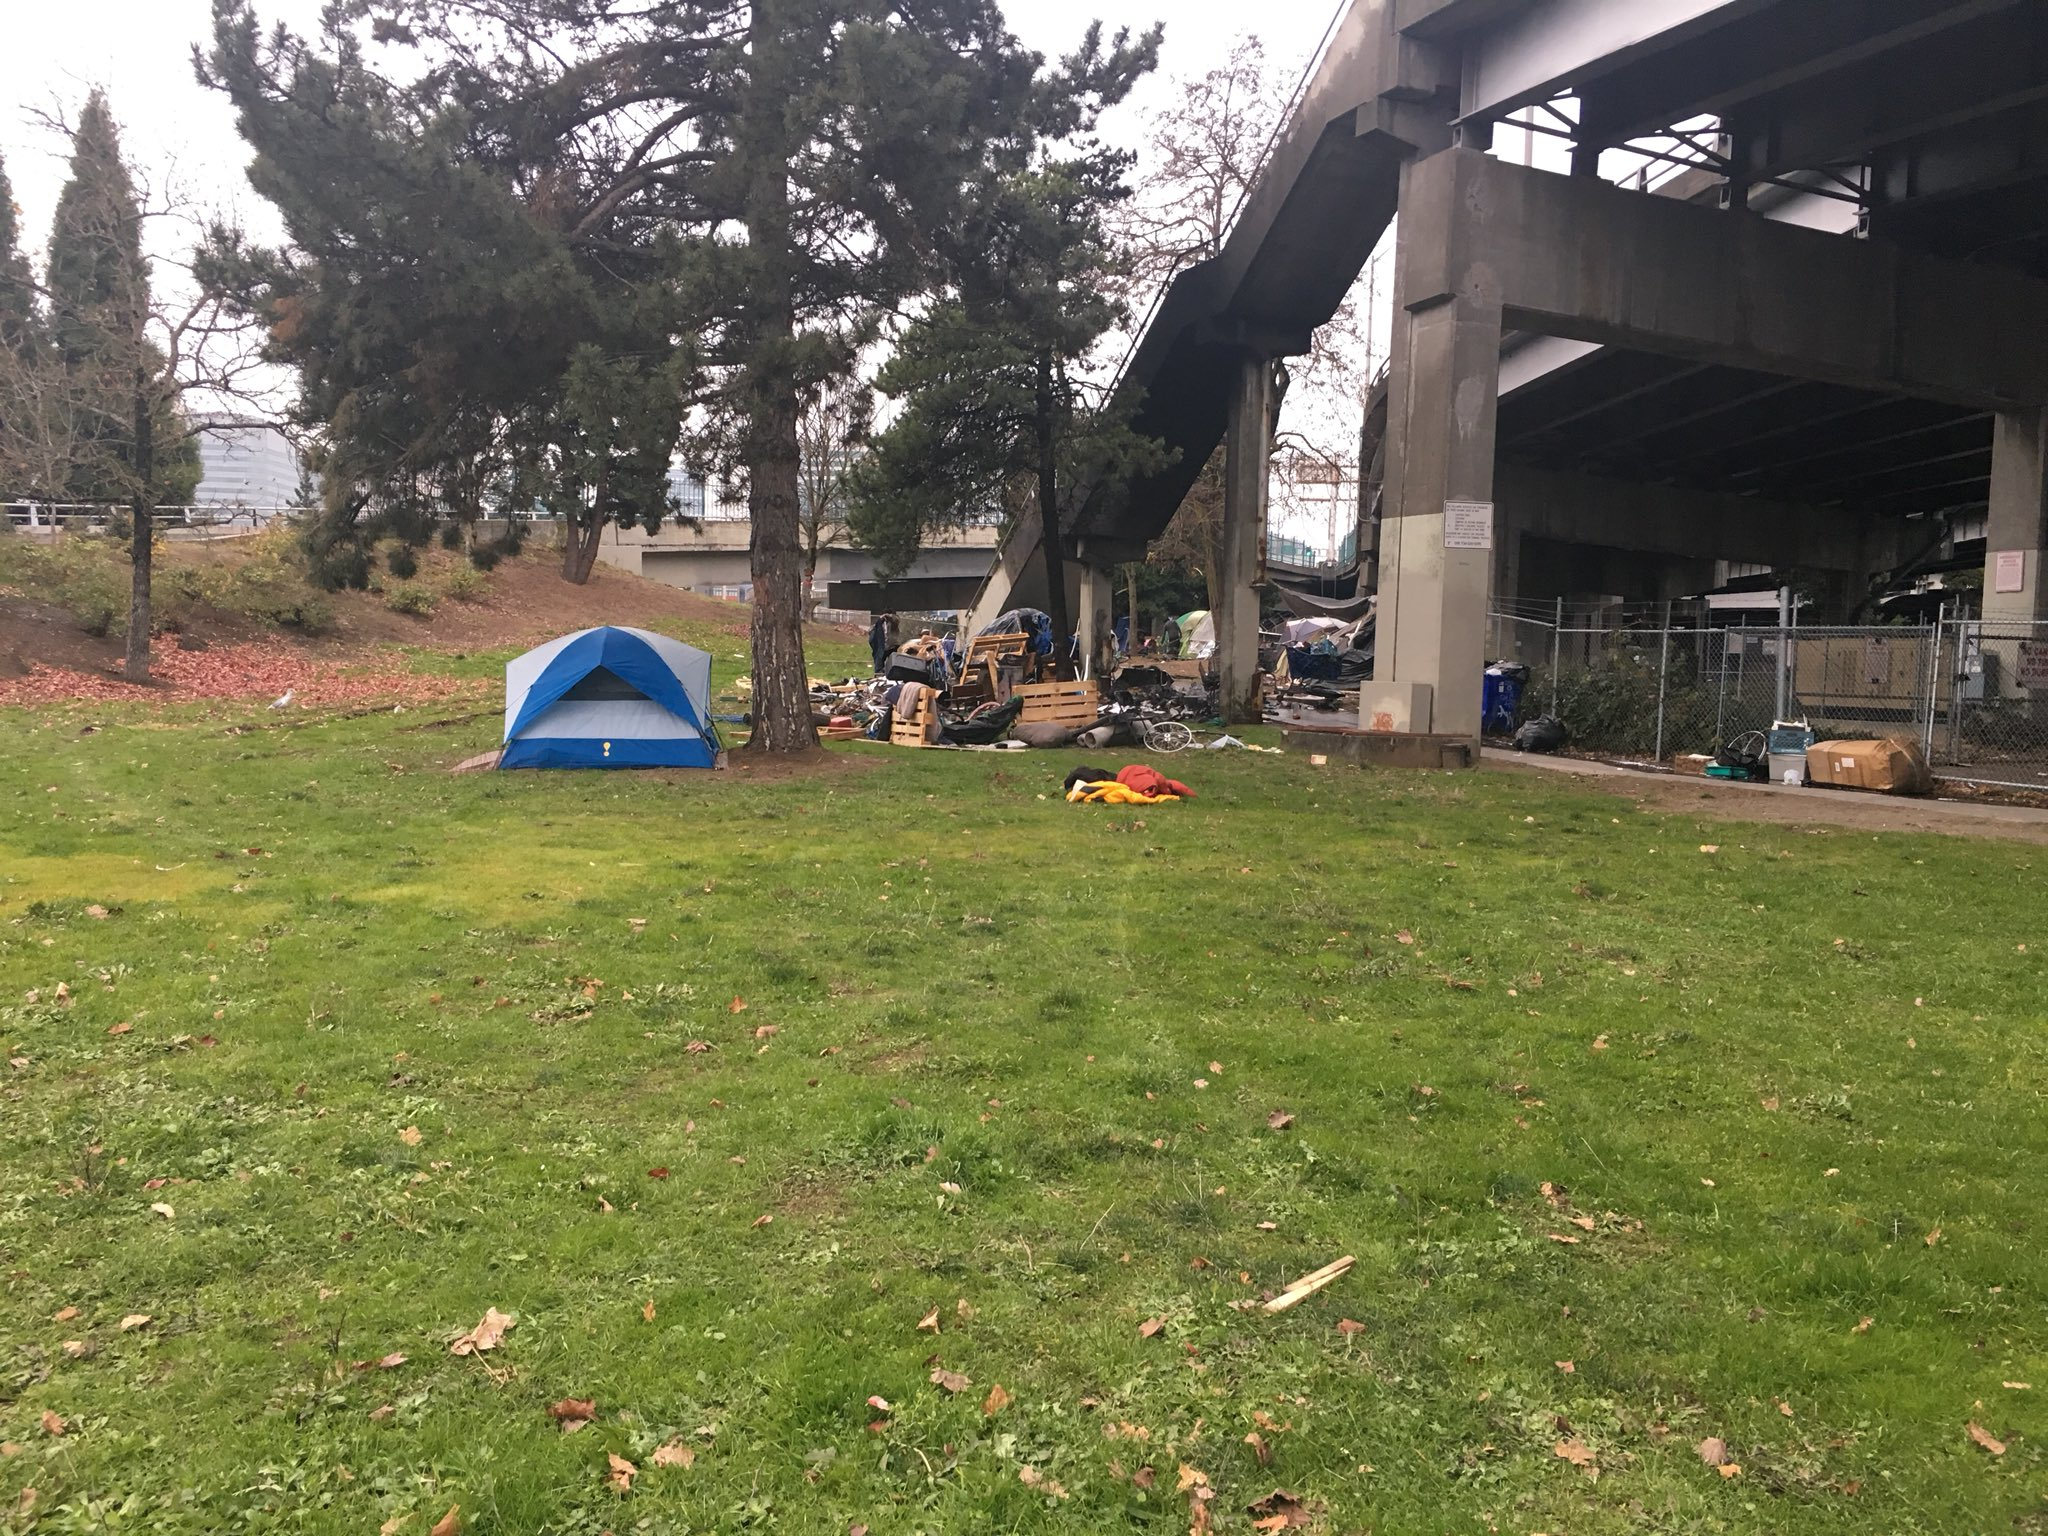 Crews responded to tents on fire at a homeless camp on the east side of the Morrison Bridge on Dec. 15, 2017. KATU photo{&amp;nbsp;}<p></p>